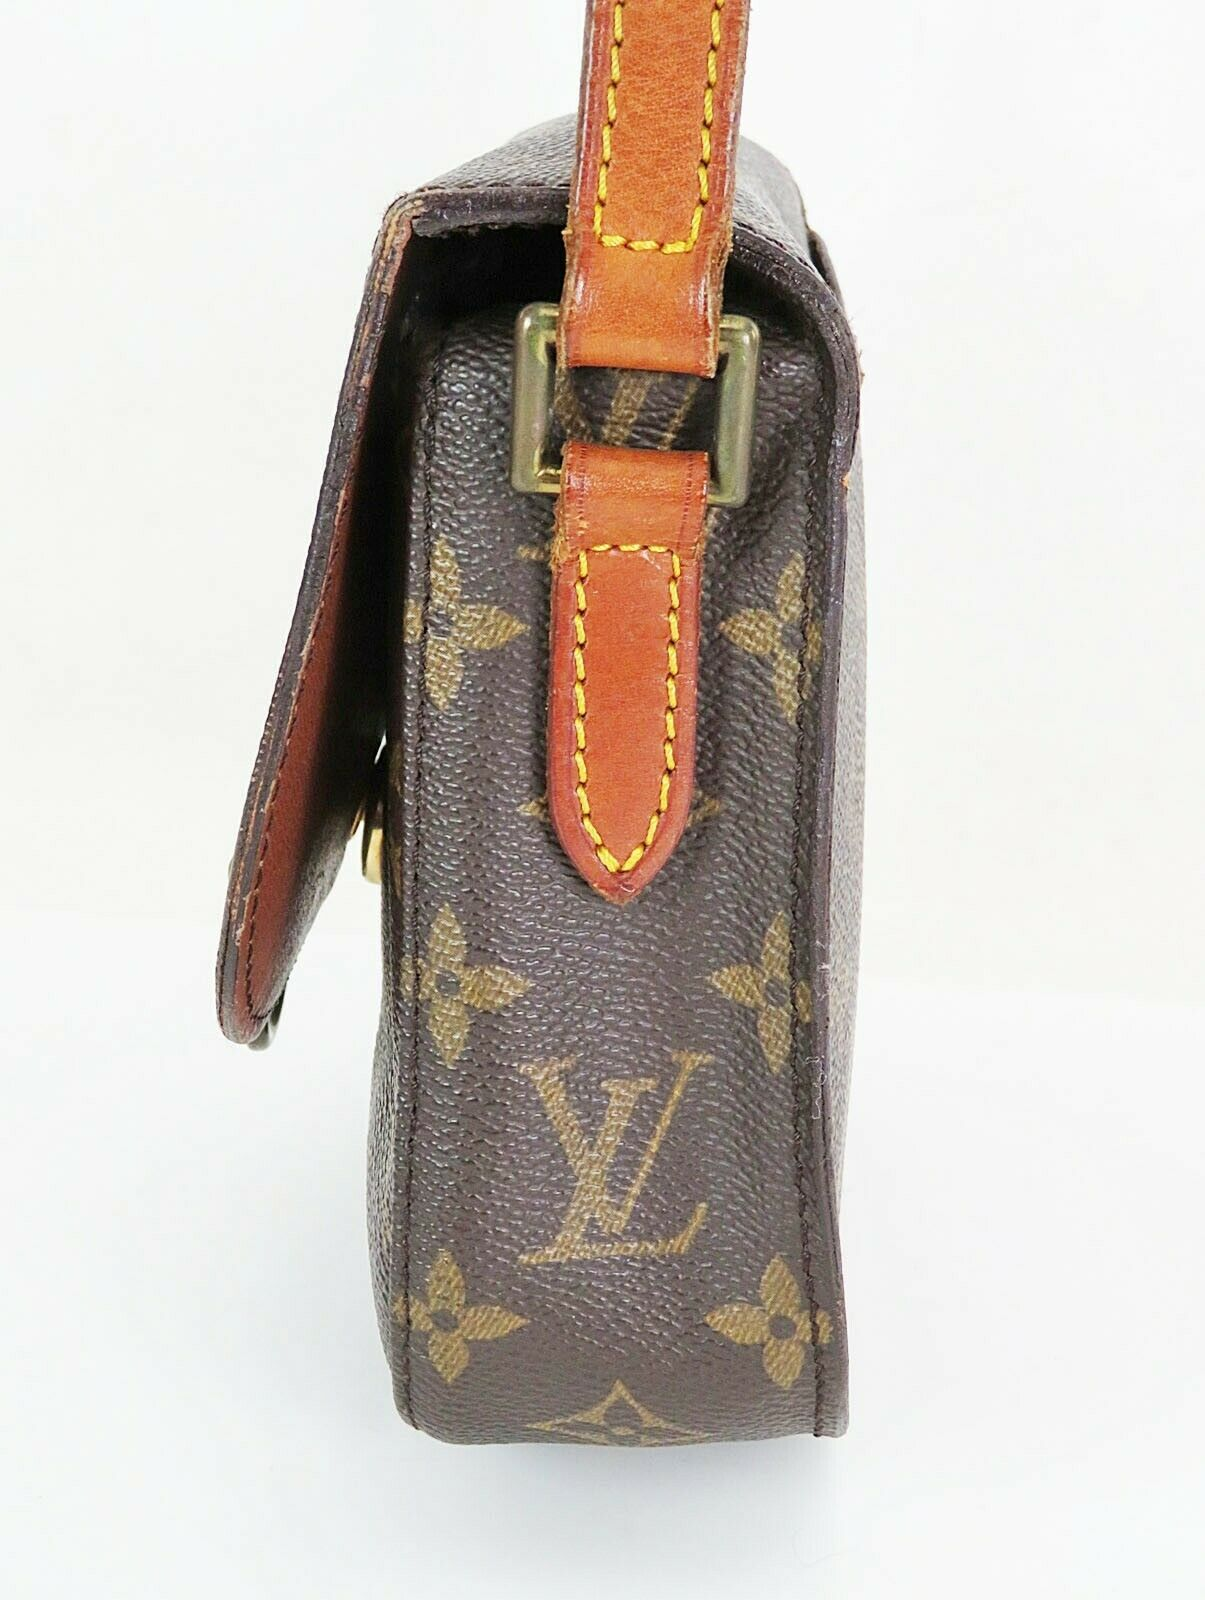 Authentic LOUIS VUITTON Saint Cloud PM Monogram Shoulder Bag #35015 image 4